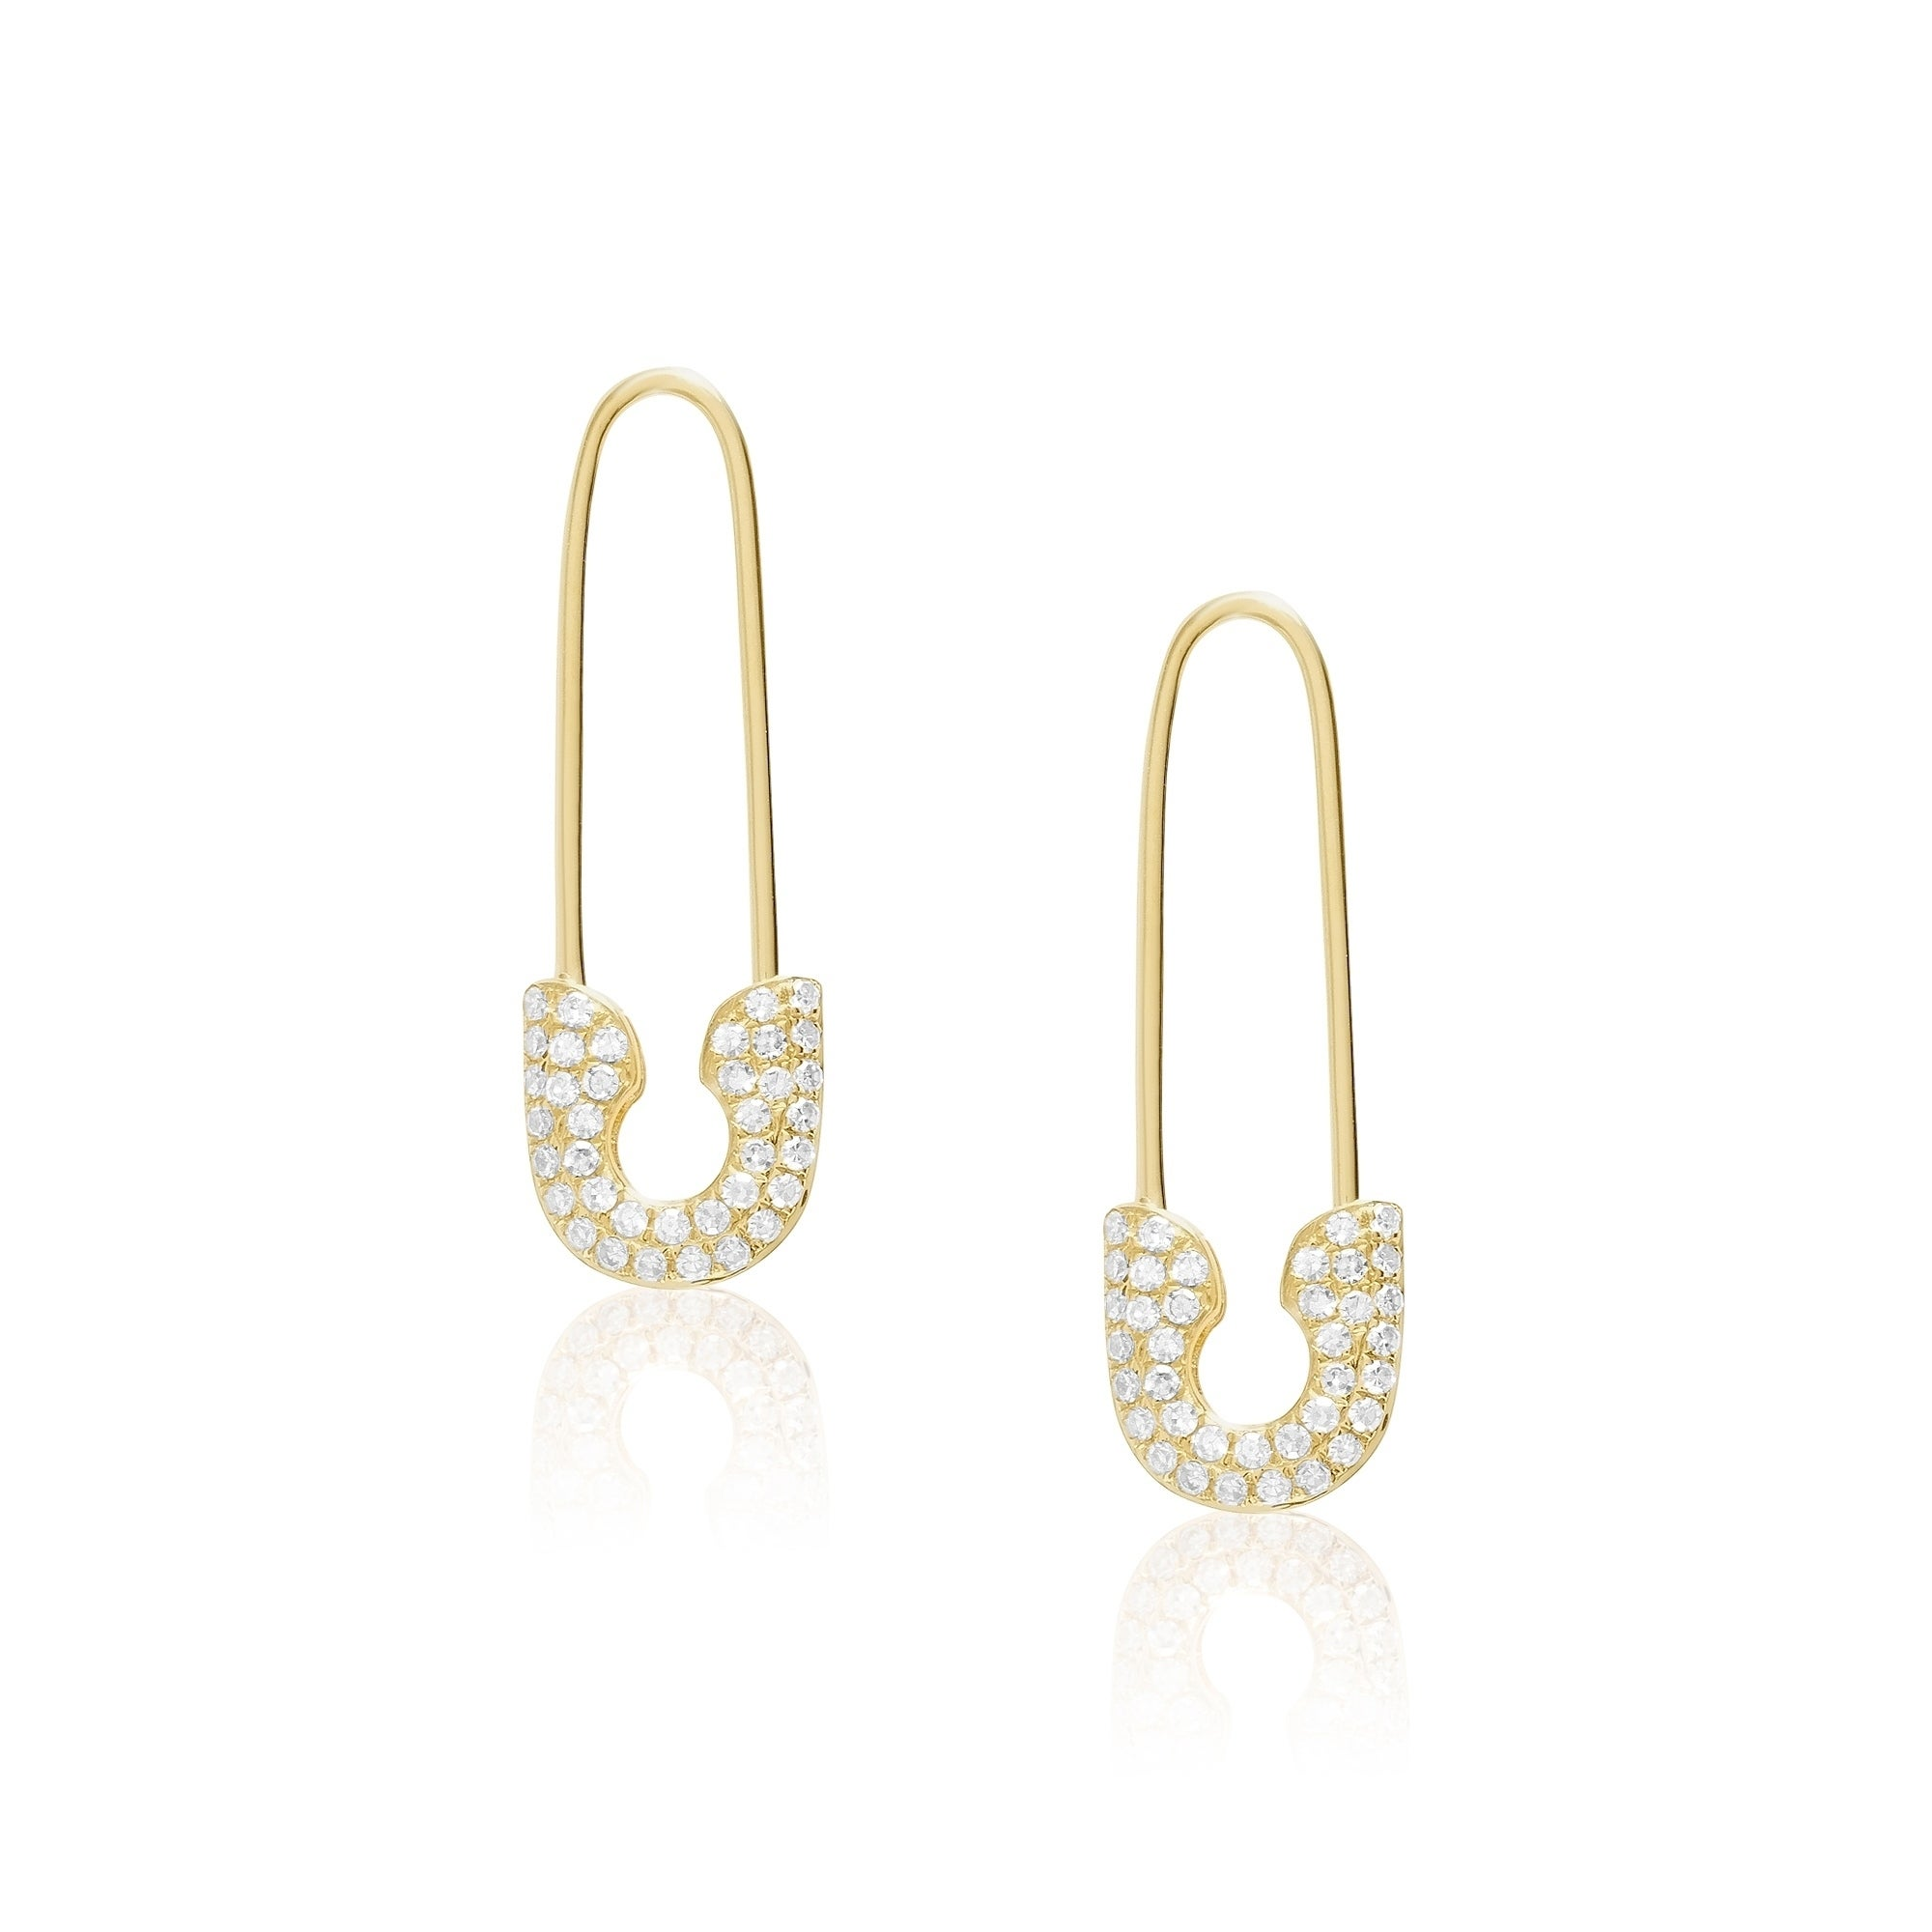 1d01f0e3c83 Shop 14KT Gold and Diamond Safety Pin Fashion Earring - Free Shipping Today  - Overstock - 23553826